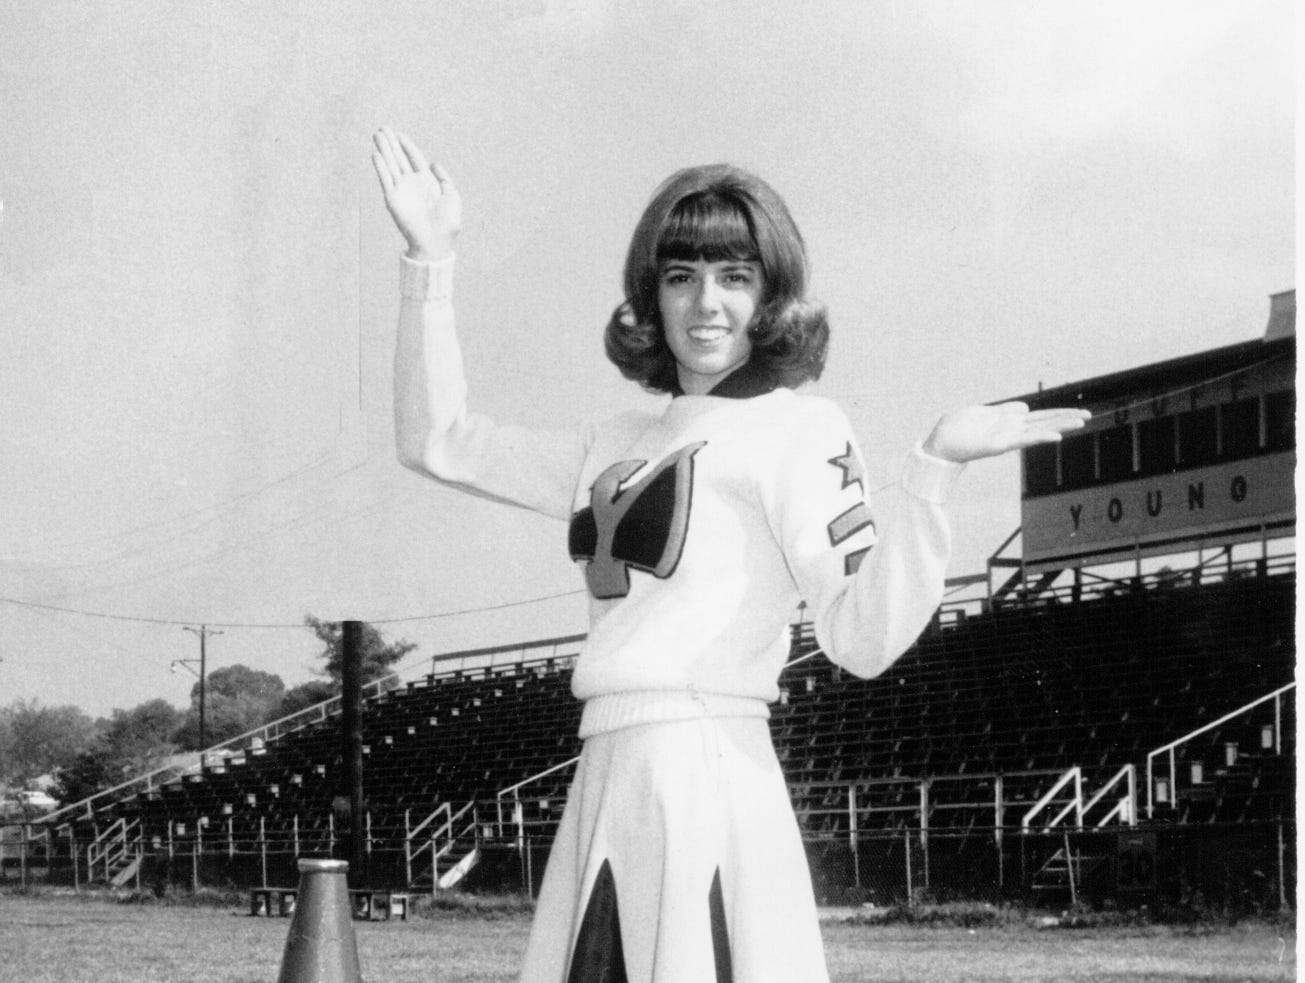 Young High School cheerleader Mary Ann Hill in the 1960s.